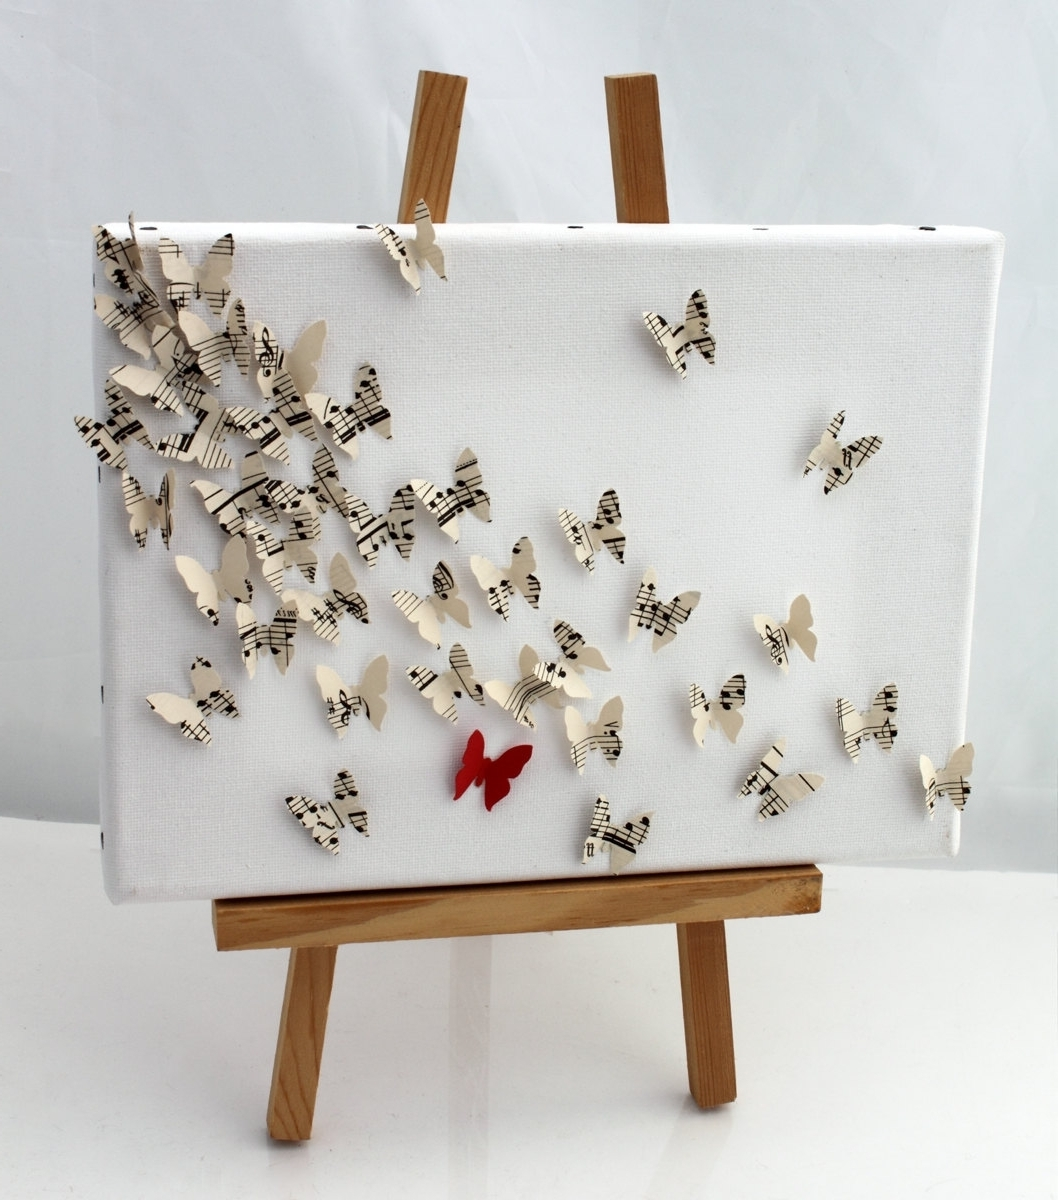 3D Butterfly Wall Art Collage On Canvas Upcycled Vintage Sheet Regarding Popular Gold Coast 3D Wall Art (Gallery 14 of 15)